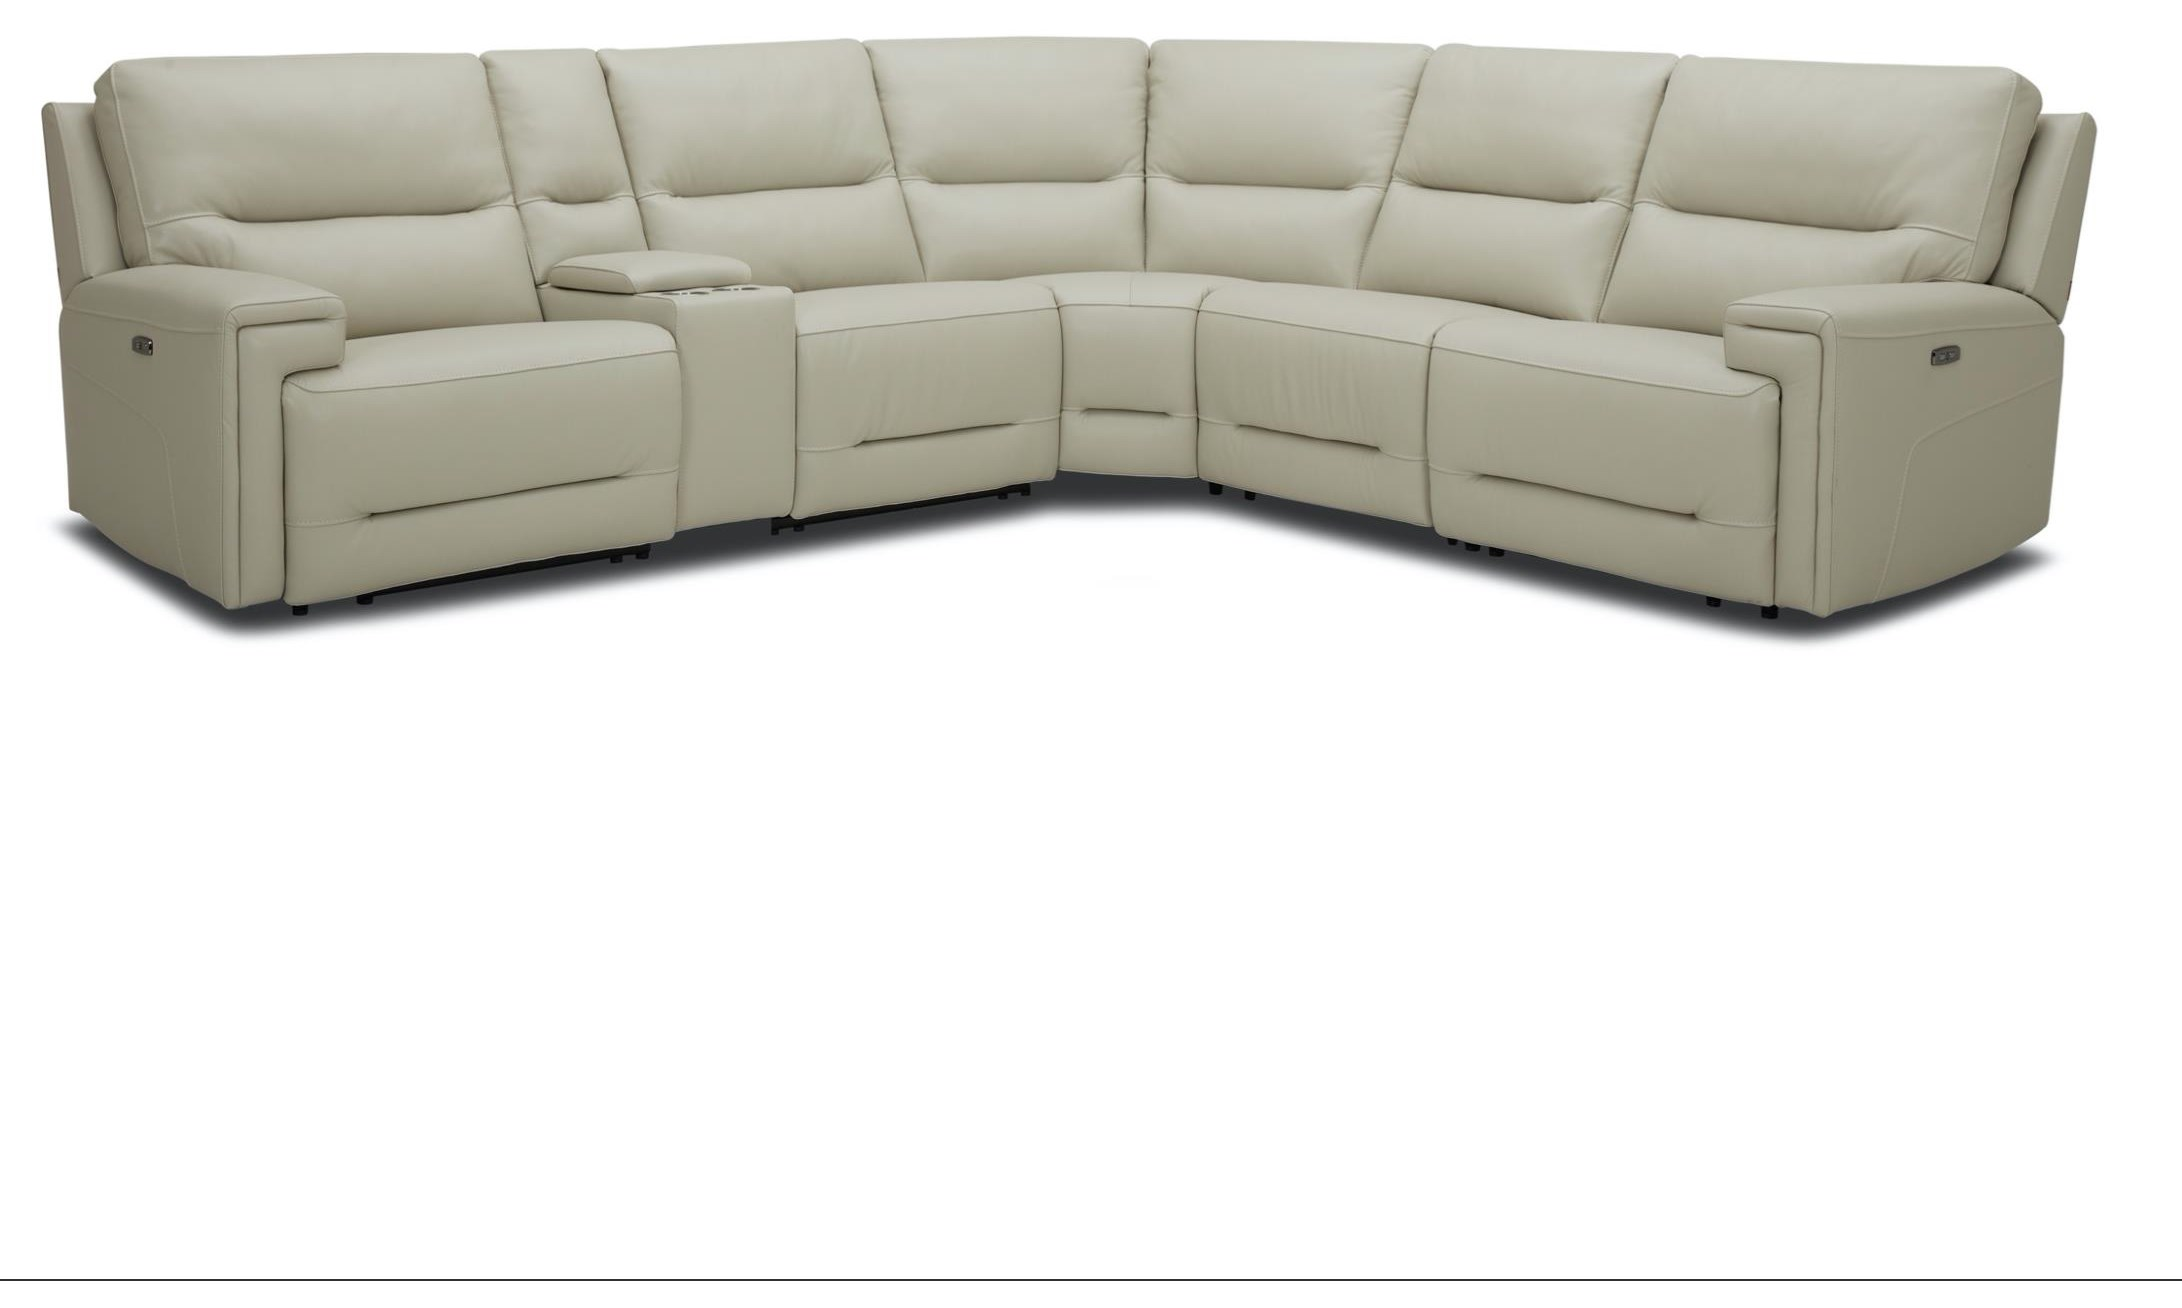 KM612 6-Piece Power Reclining Sectional Sofa by Kuka Home at Beck's Furniture